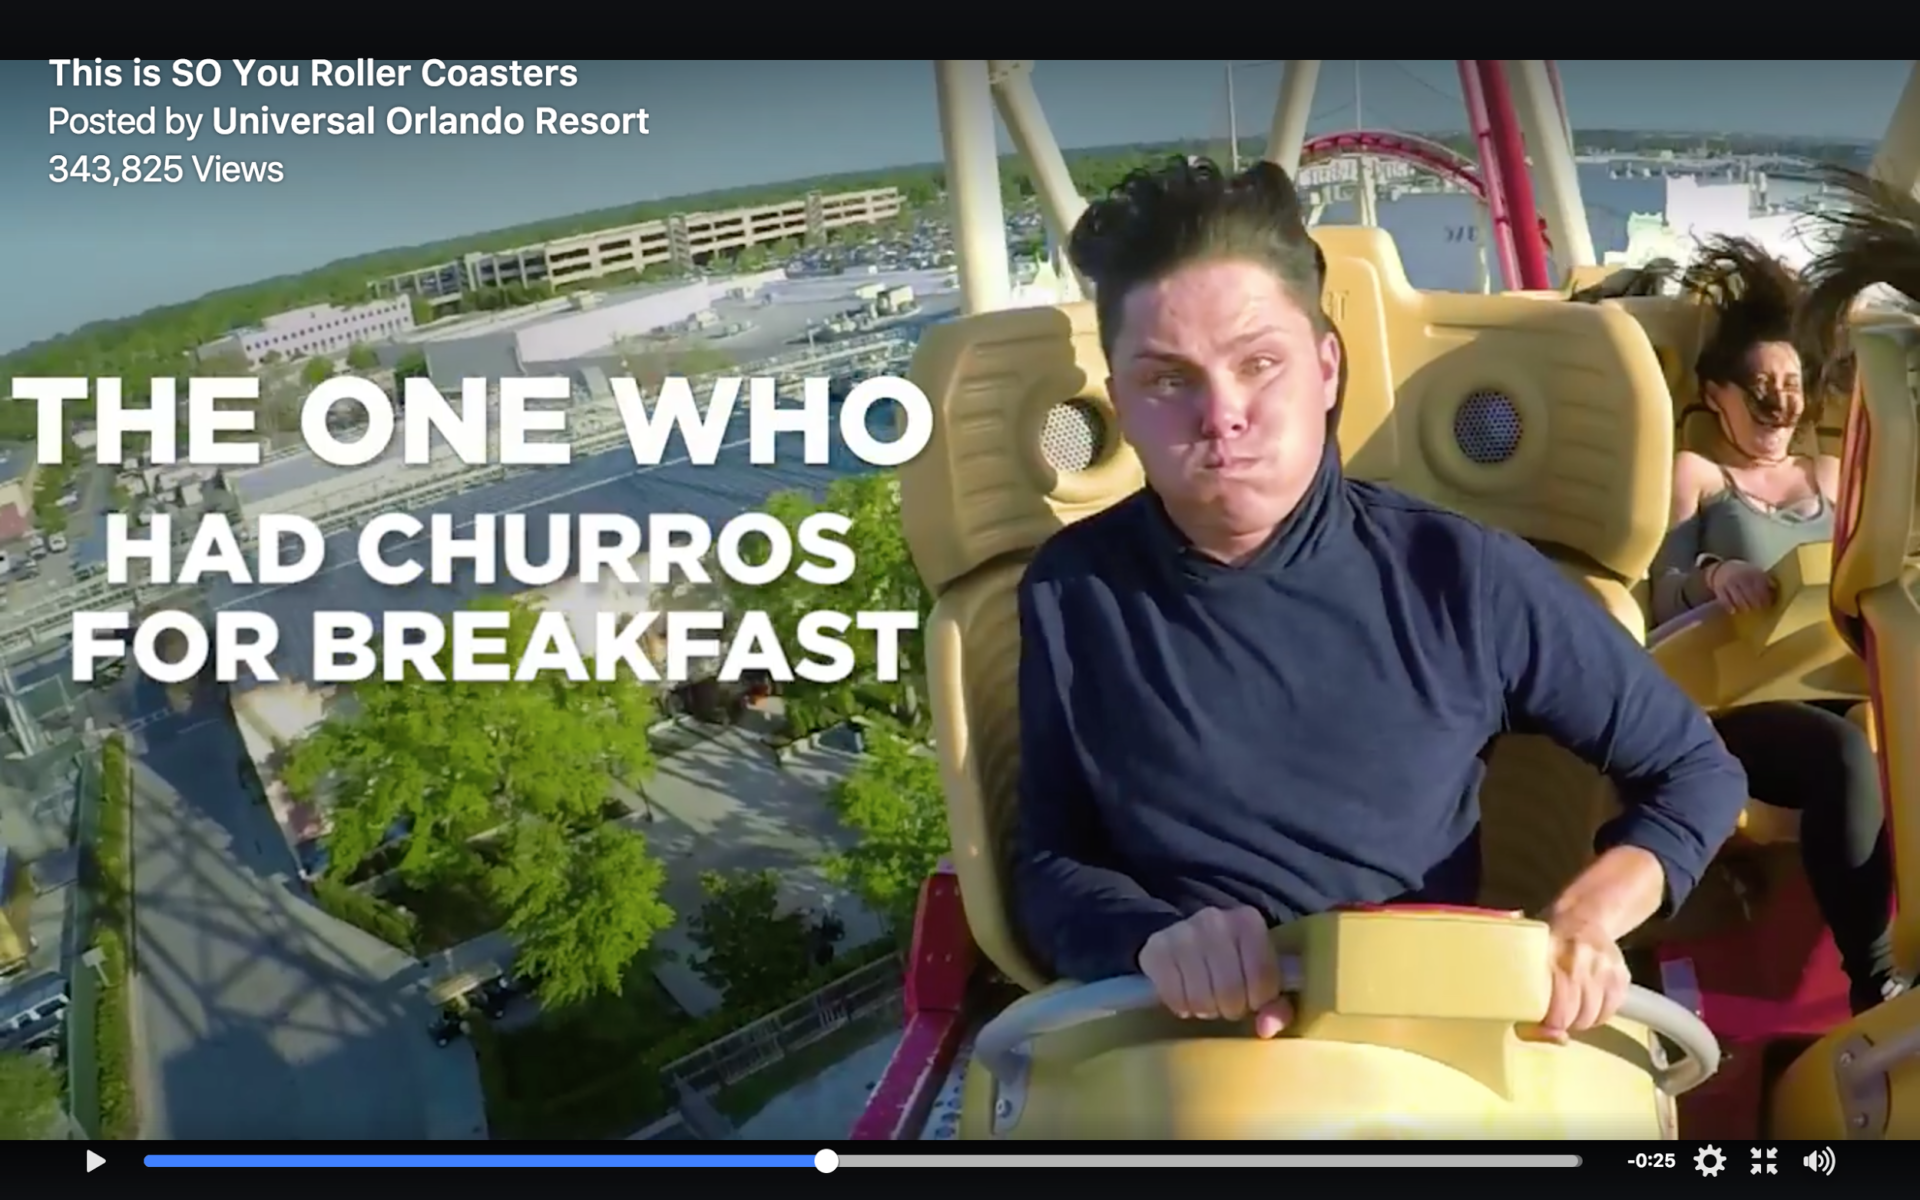 The One Who Had Churros